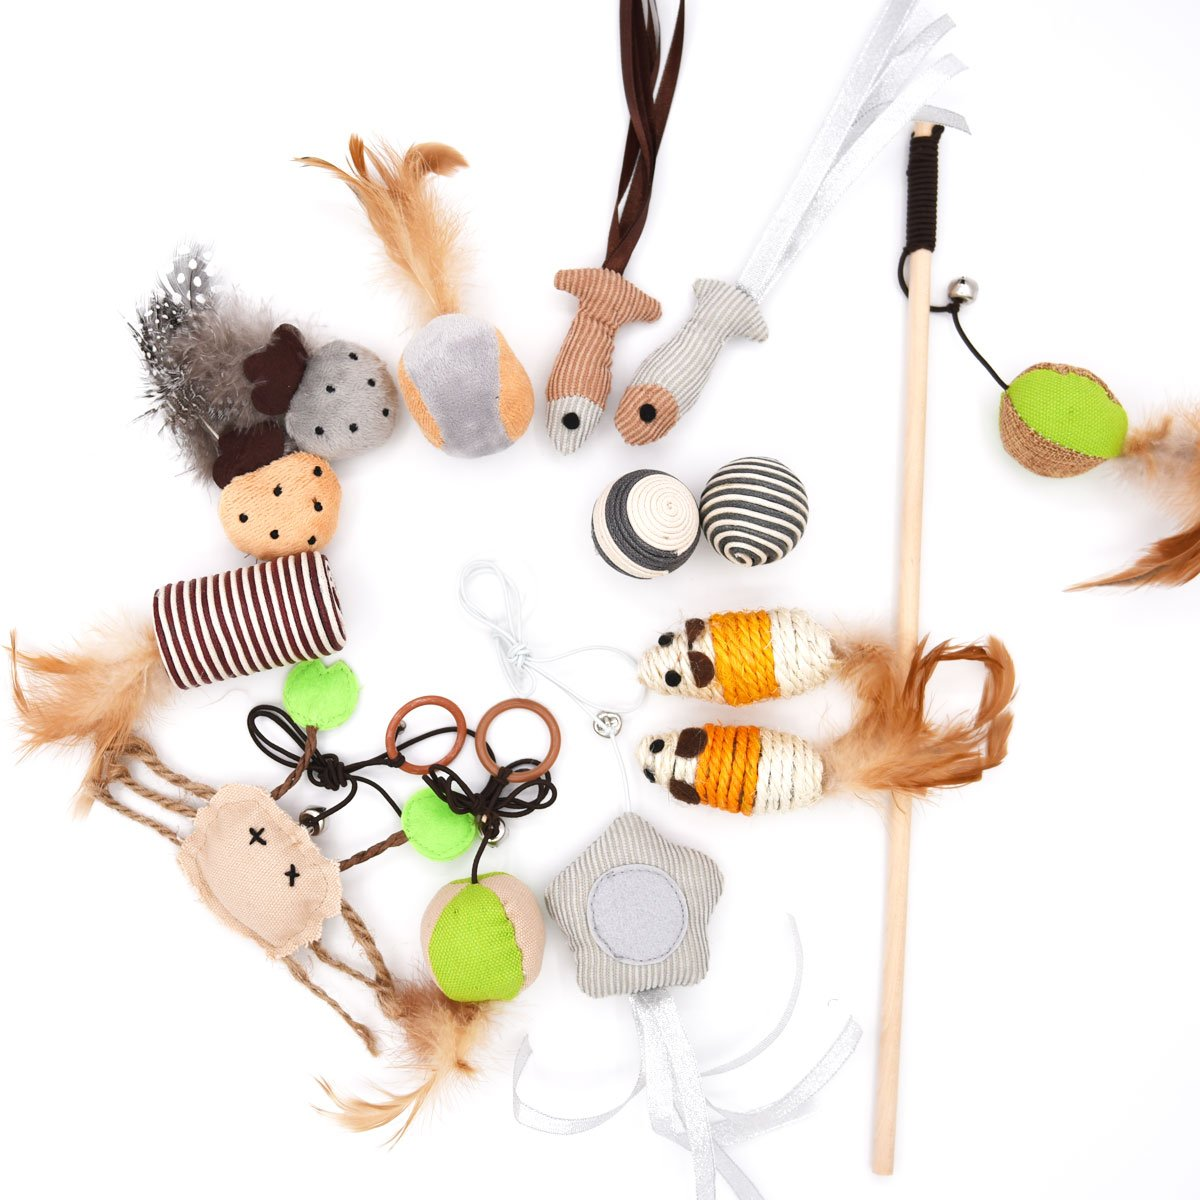 MorePets 14 Premium Natural Interactive Cat Toys Variety Pack Teaser Wand Toy Set Mouse Fish Feather by MorePets (Image #1)